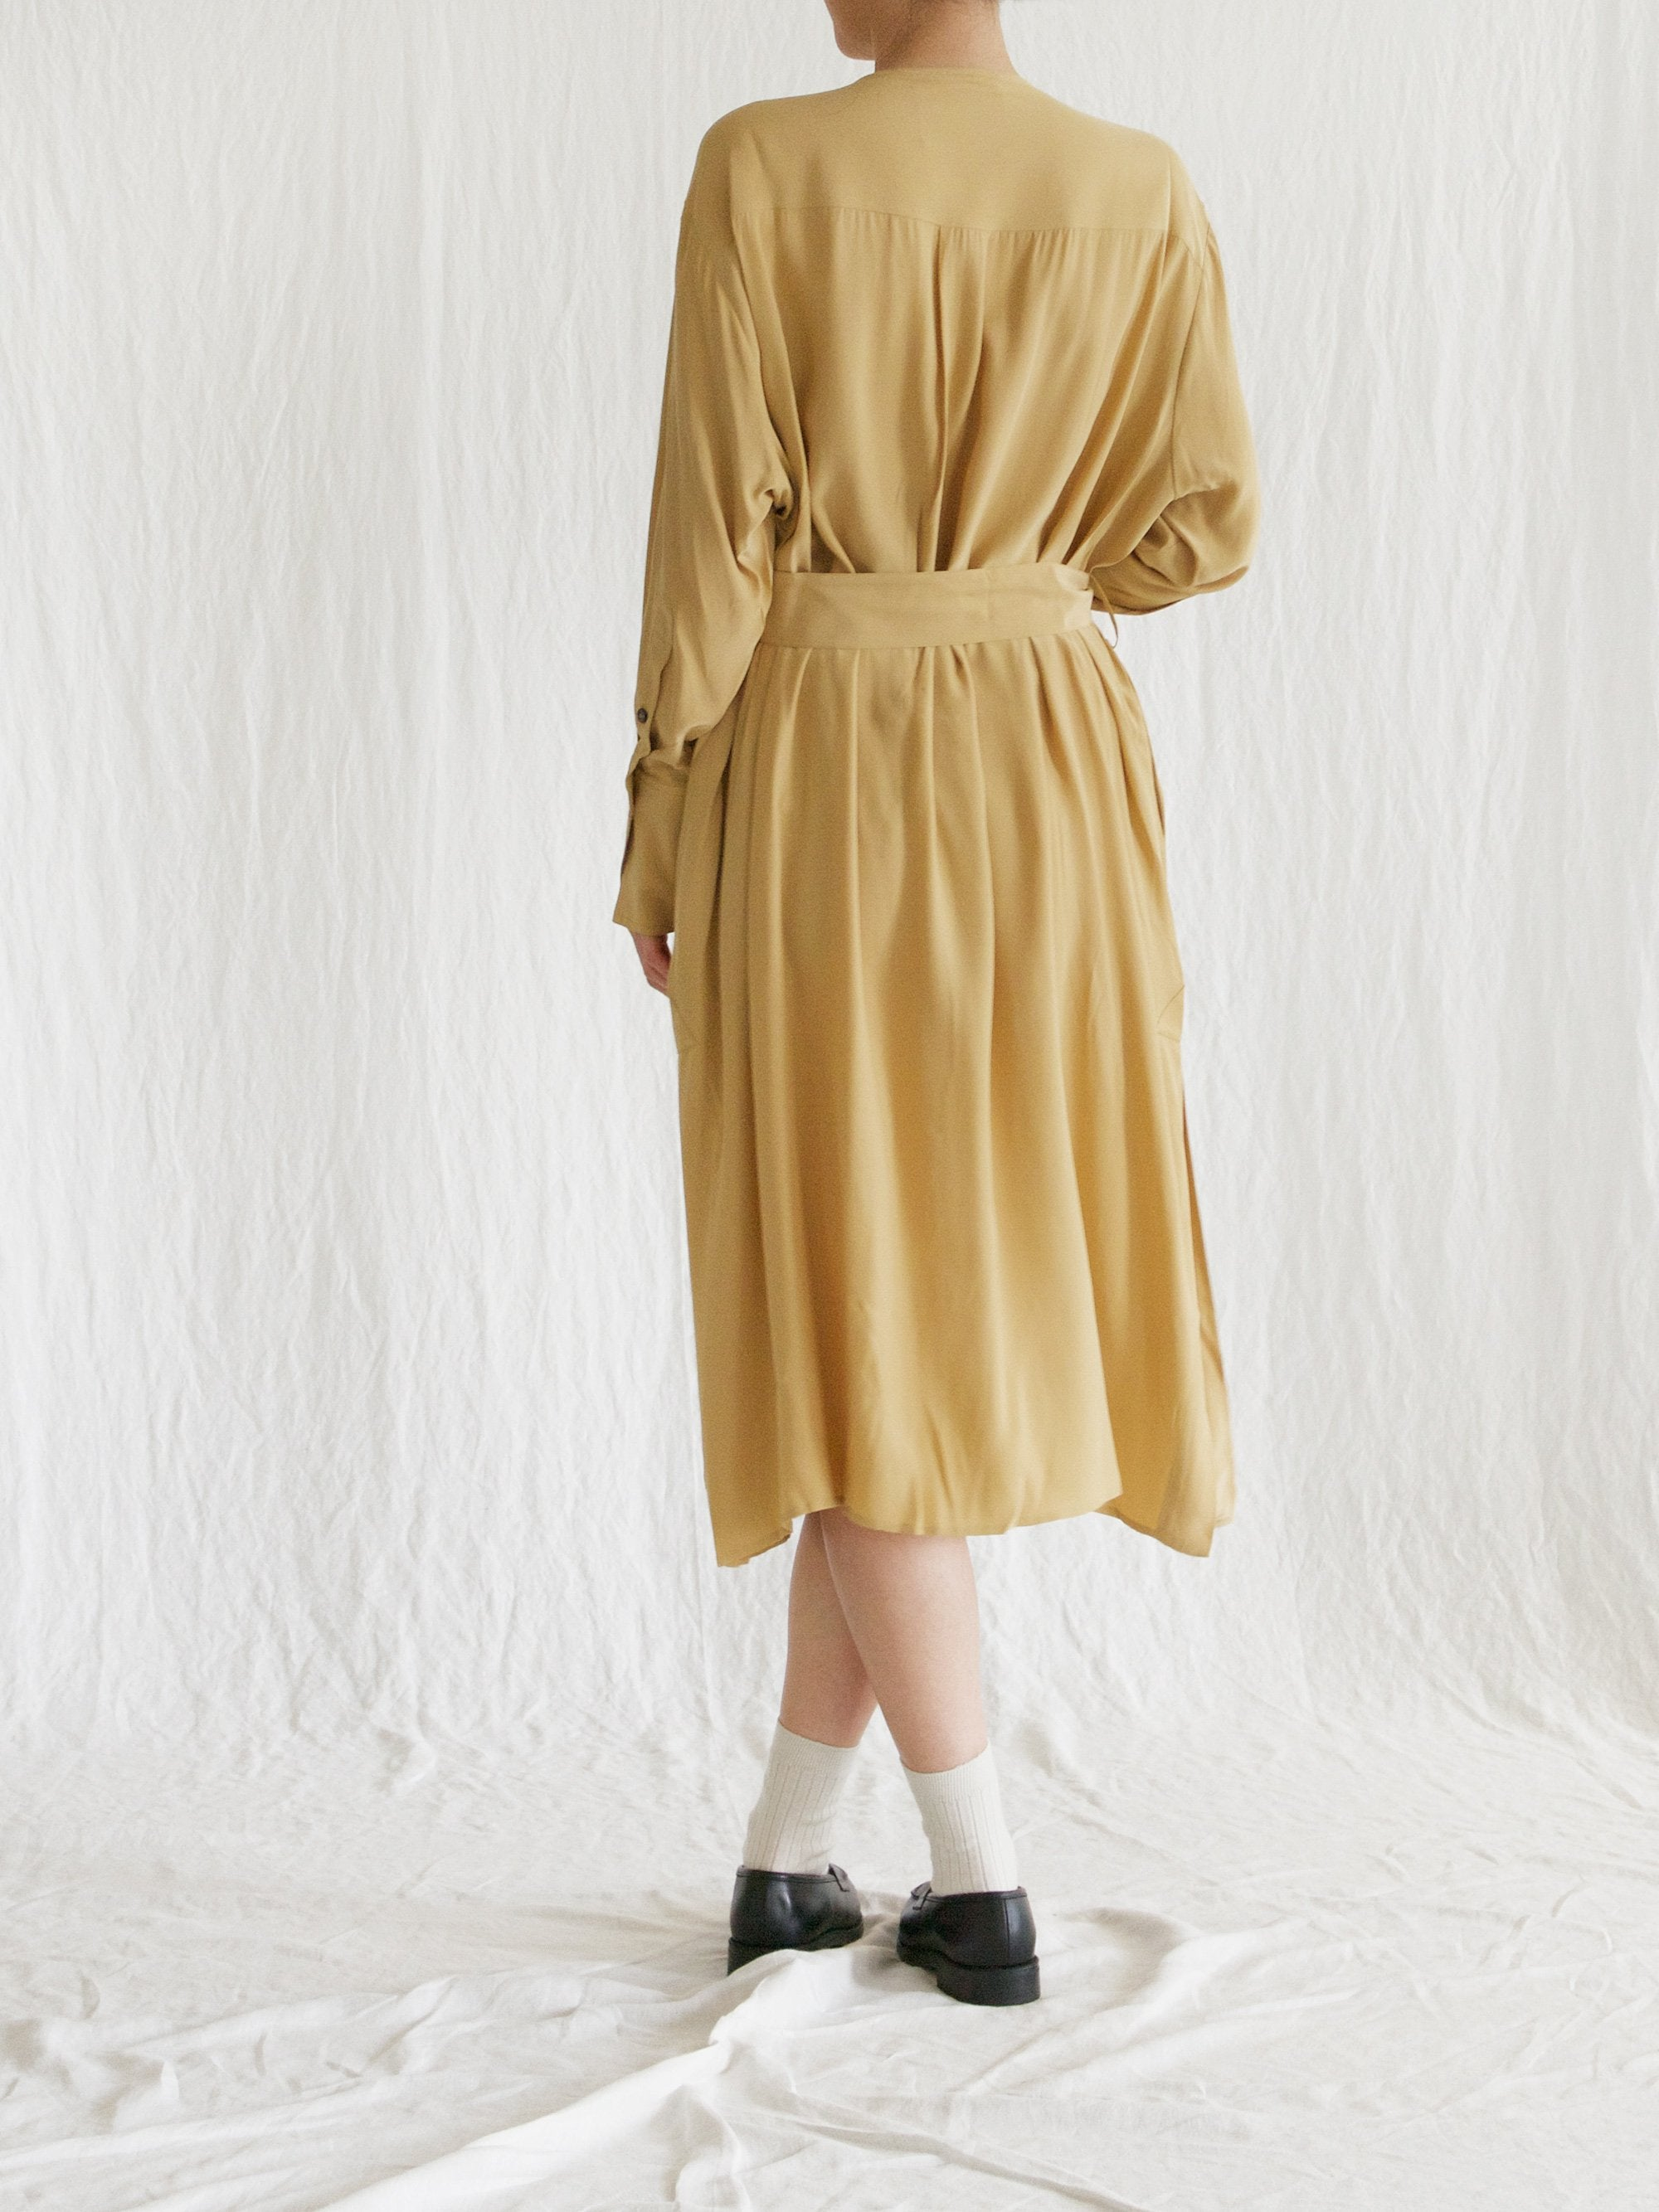 Namu Shop - Studio Nicholson Silk Satin Belted Shirt Dress - Dessert